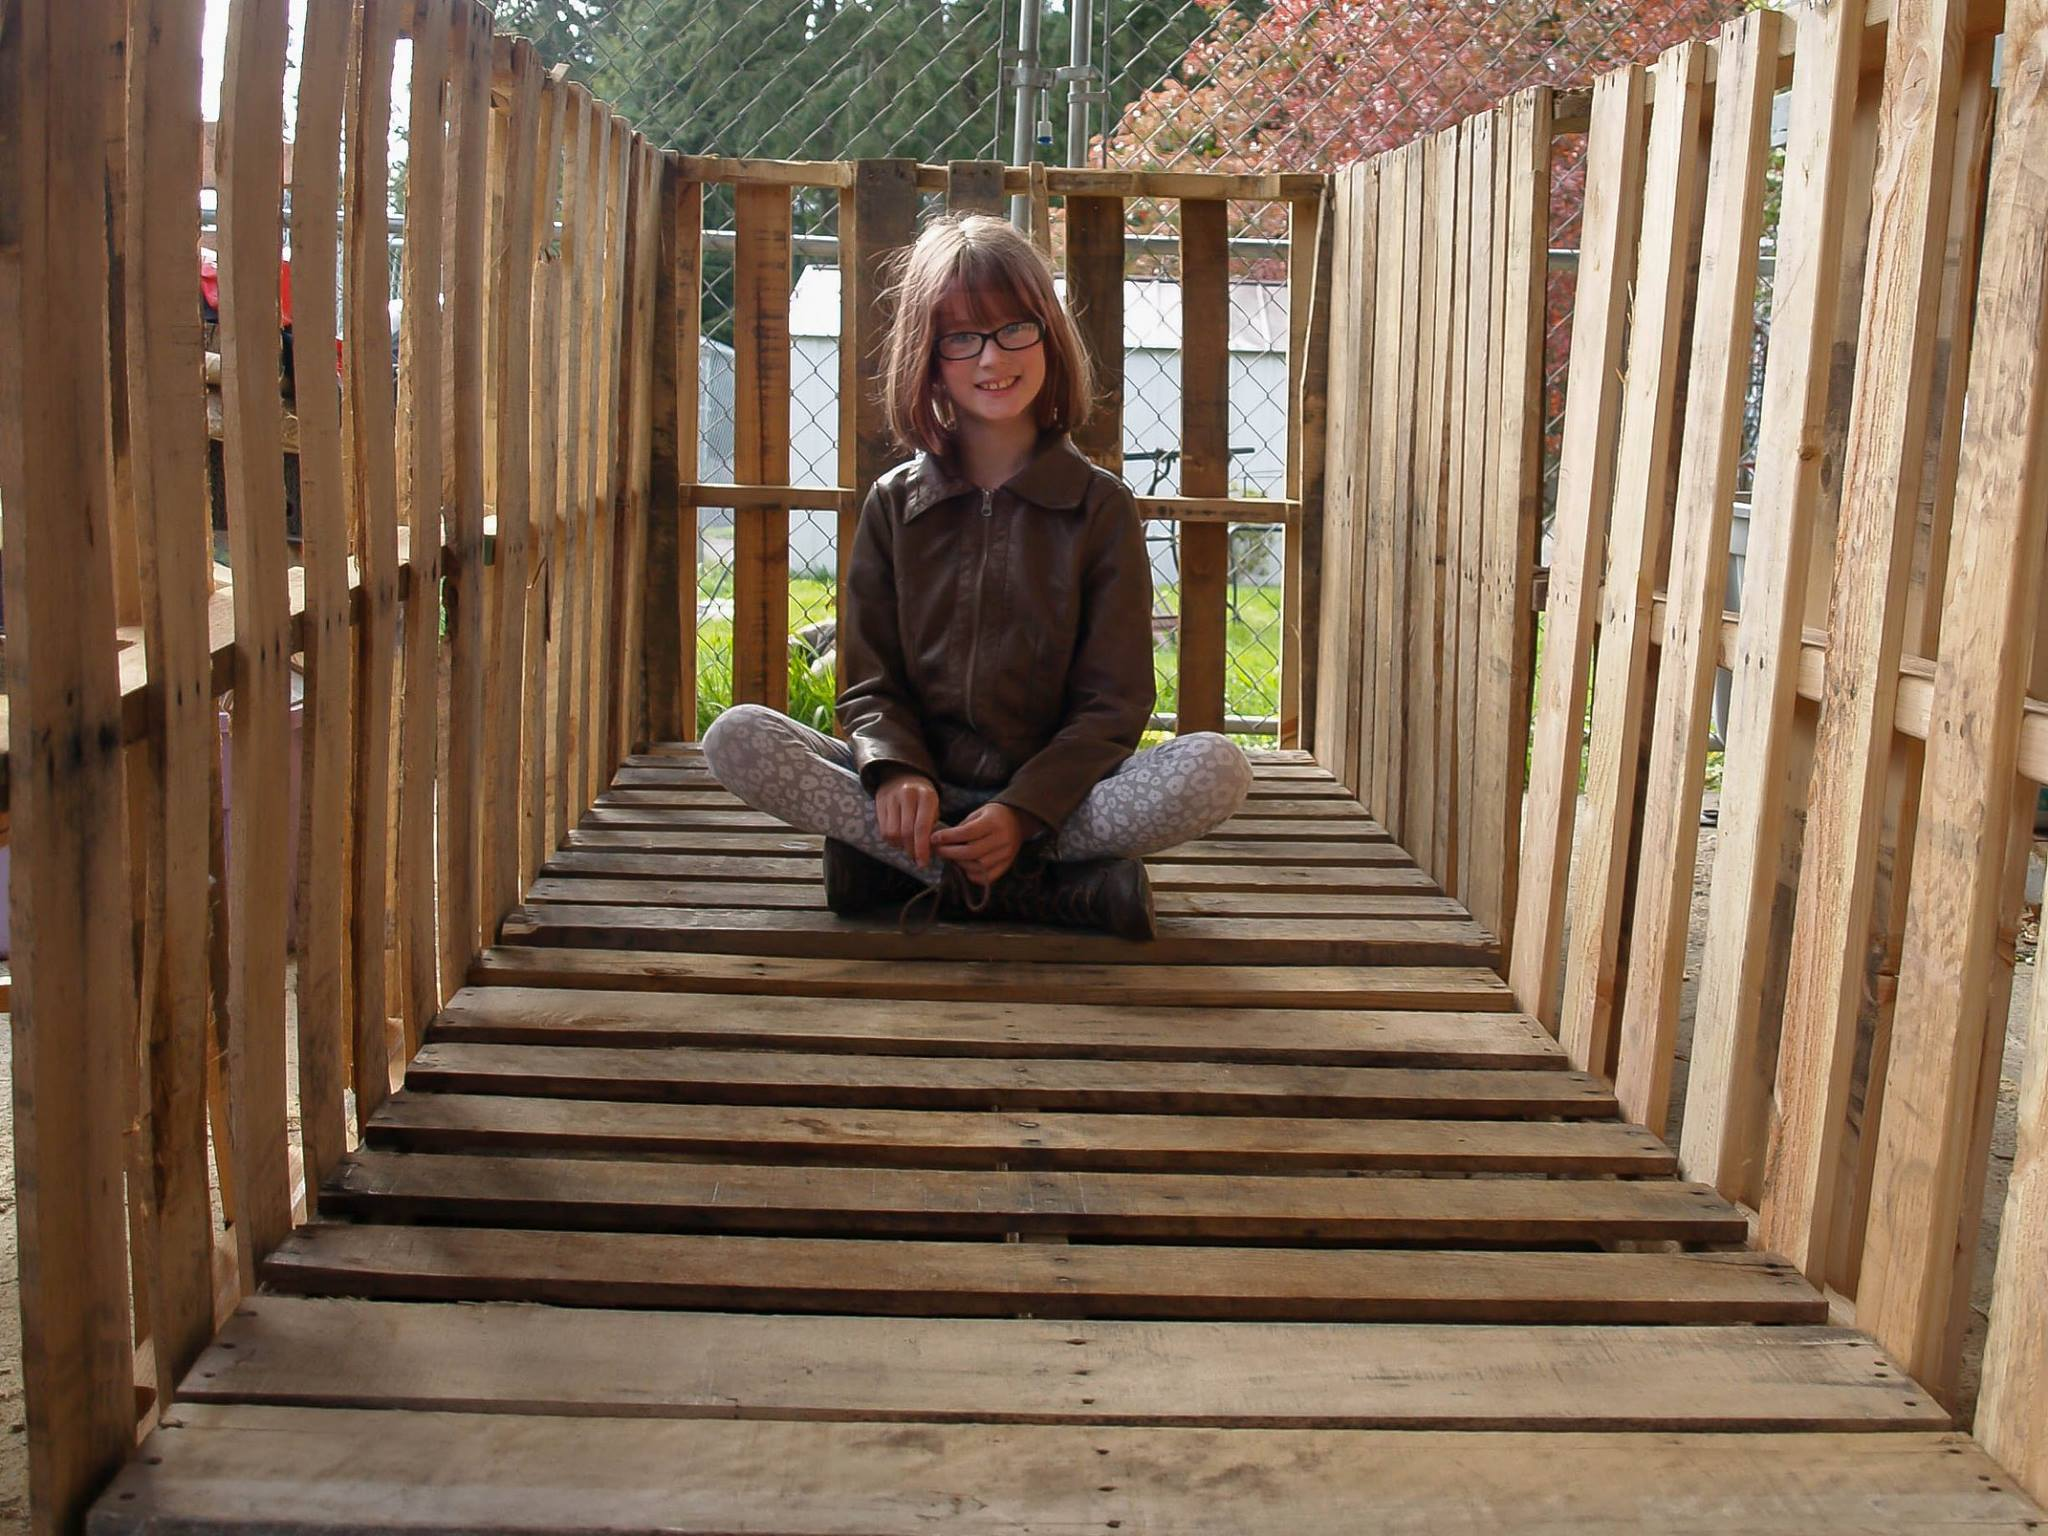 hailey homeless 1 Inspirational 9 Year Old Girl Is Building Shelters For The Homeless